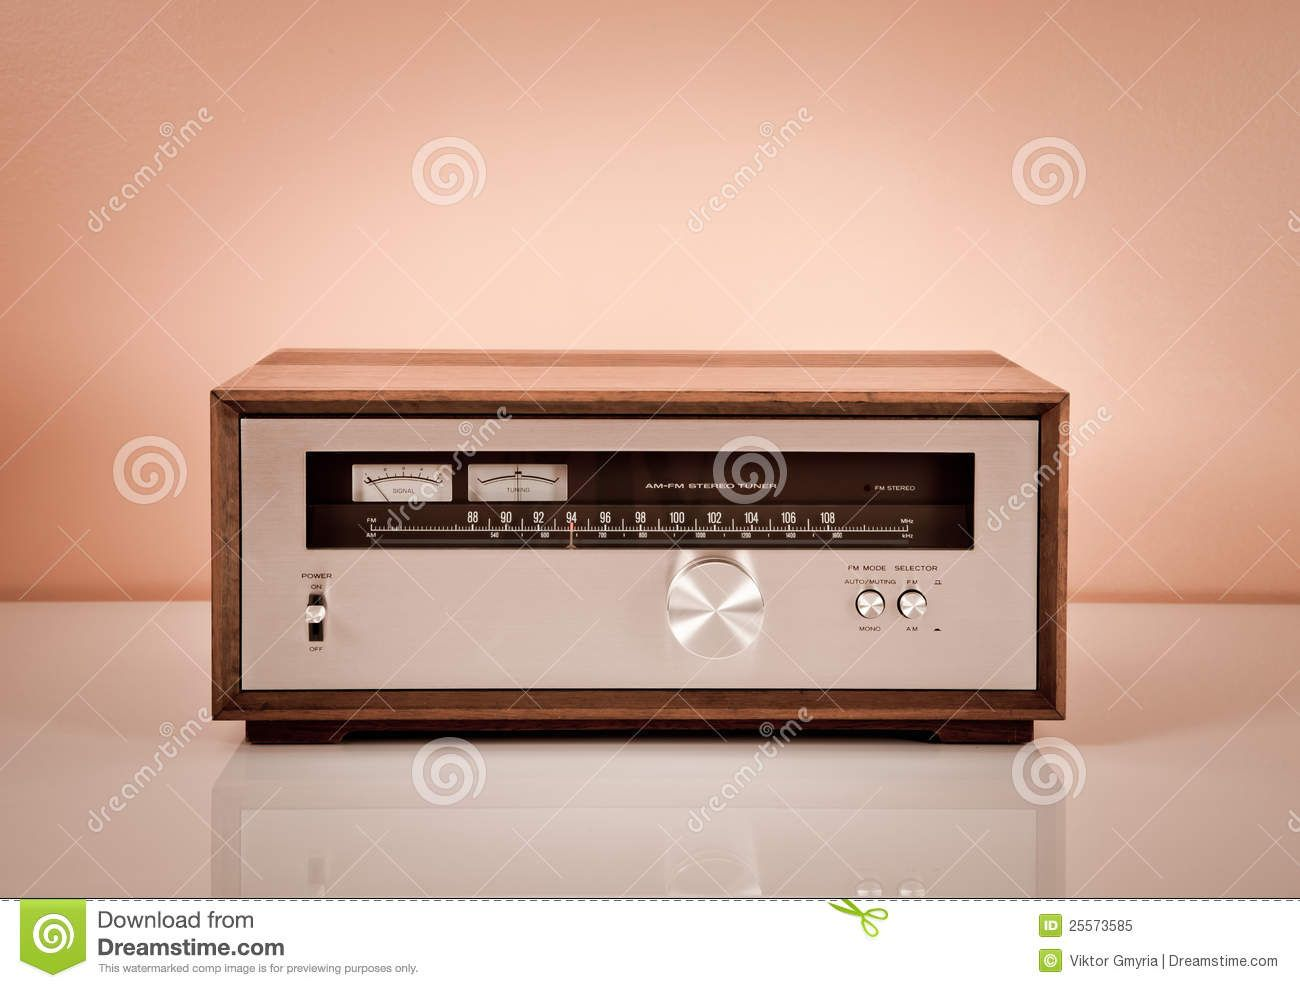 Vintage Stereo Radio Tuner In Wooden Cabinet